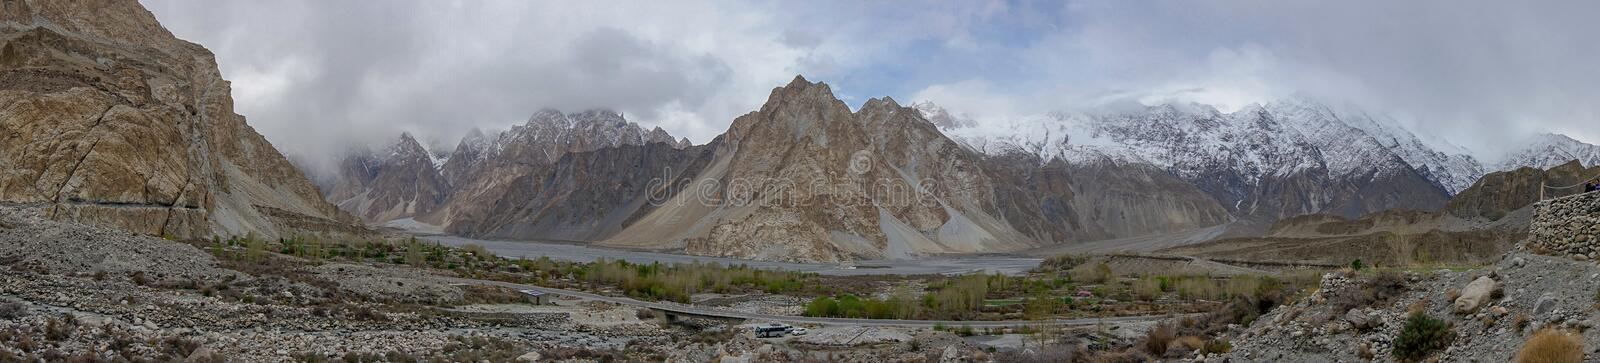 Photographie panoramique de mountainscape au village de Passu, Gilgit, Ba photos stock